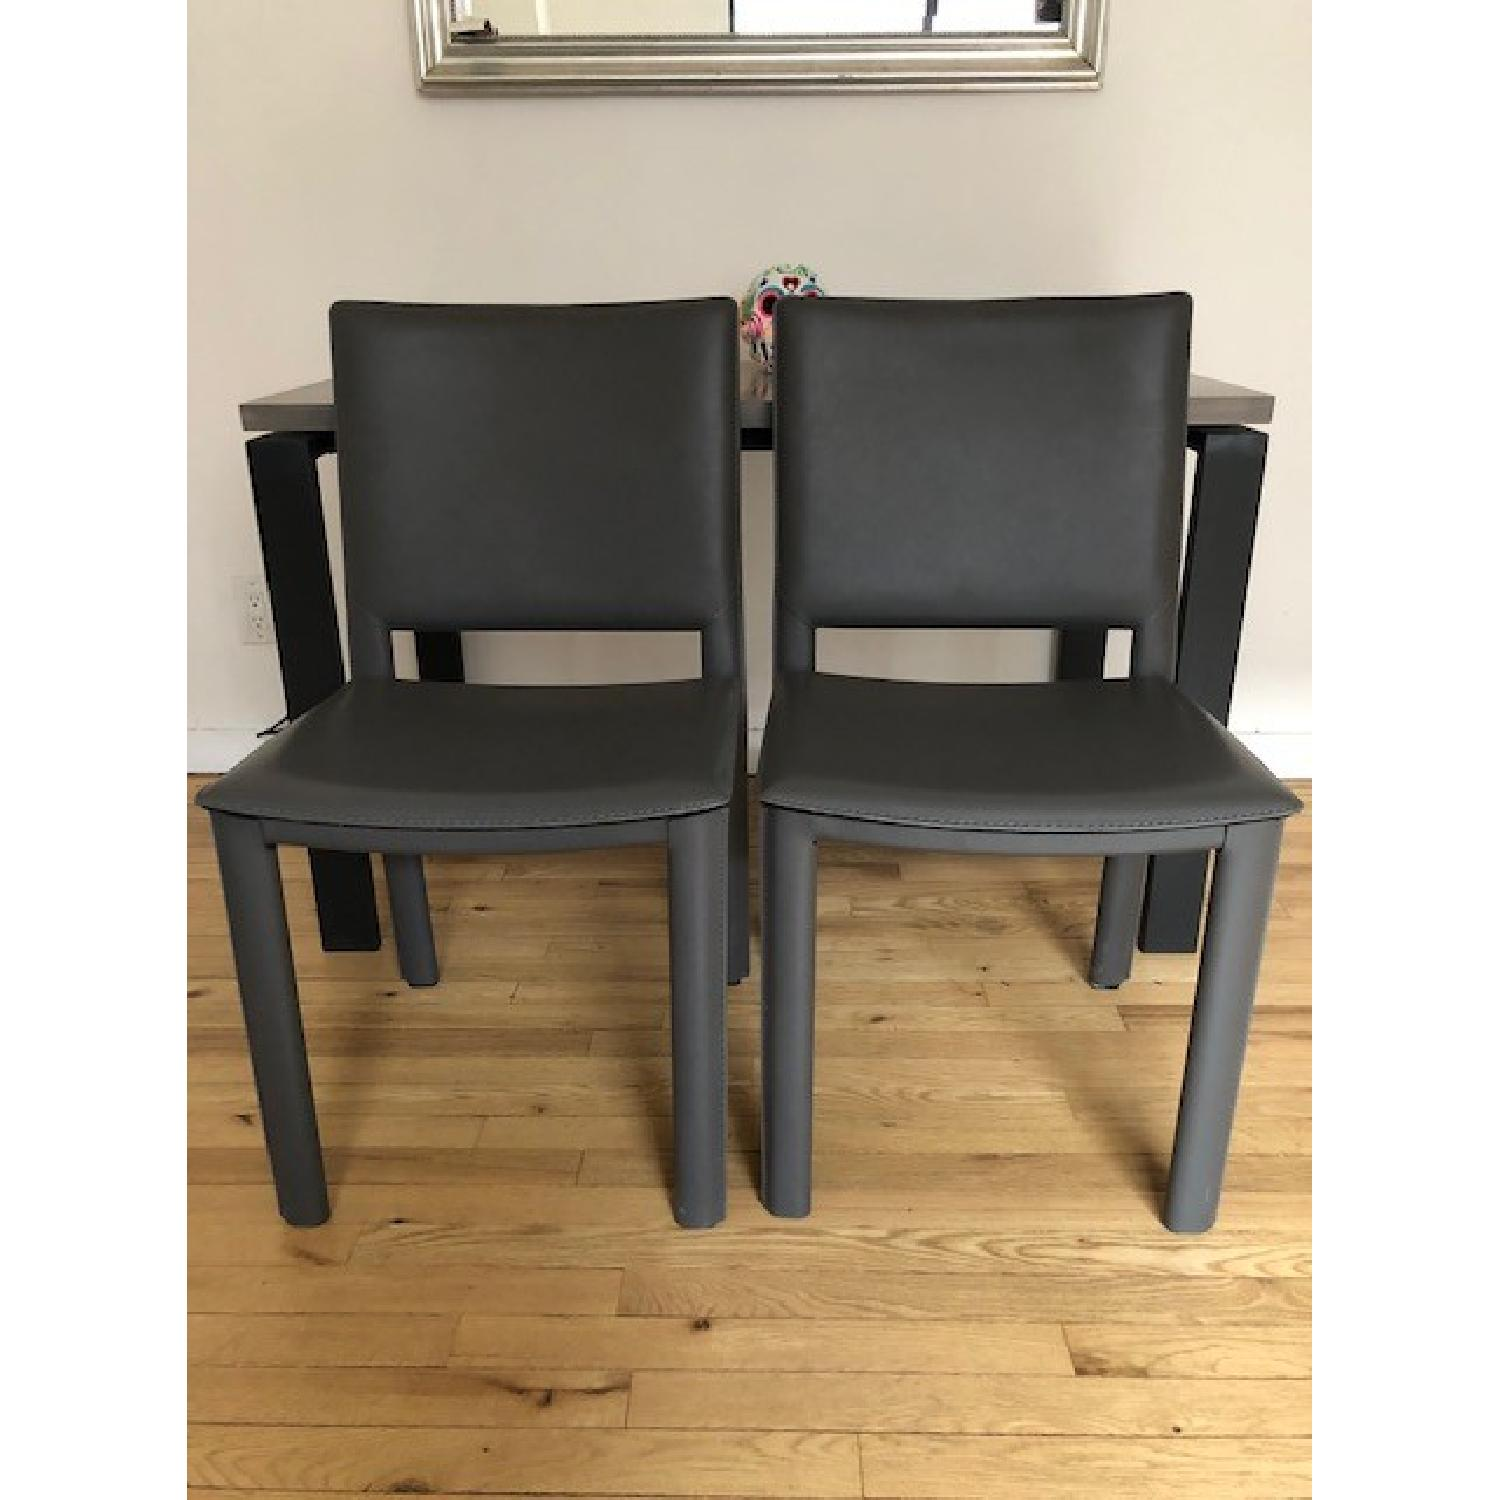 Room & Board Counter Table w/ 2 Chairs-6